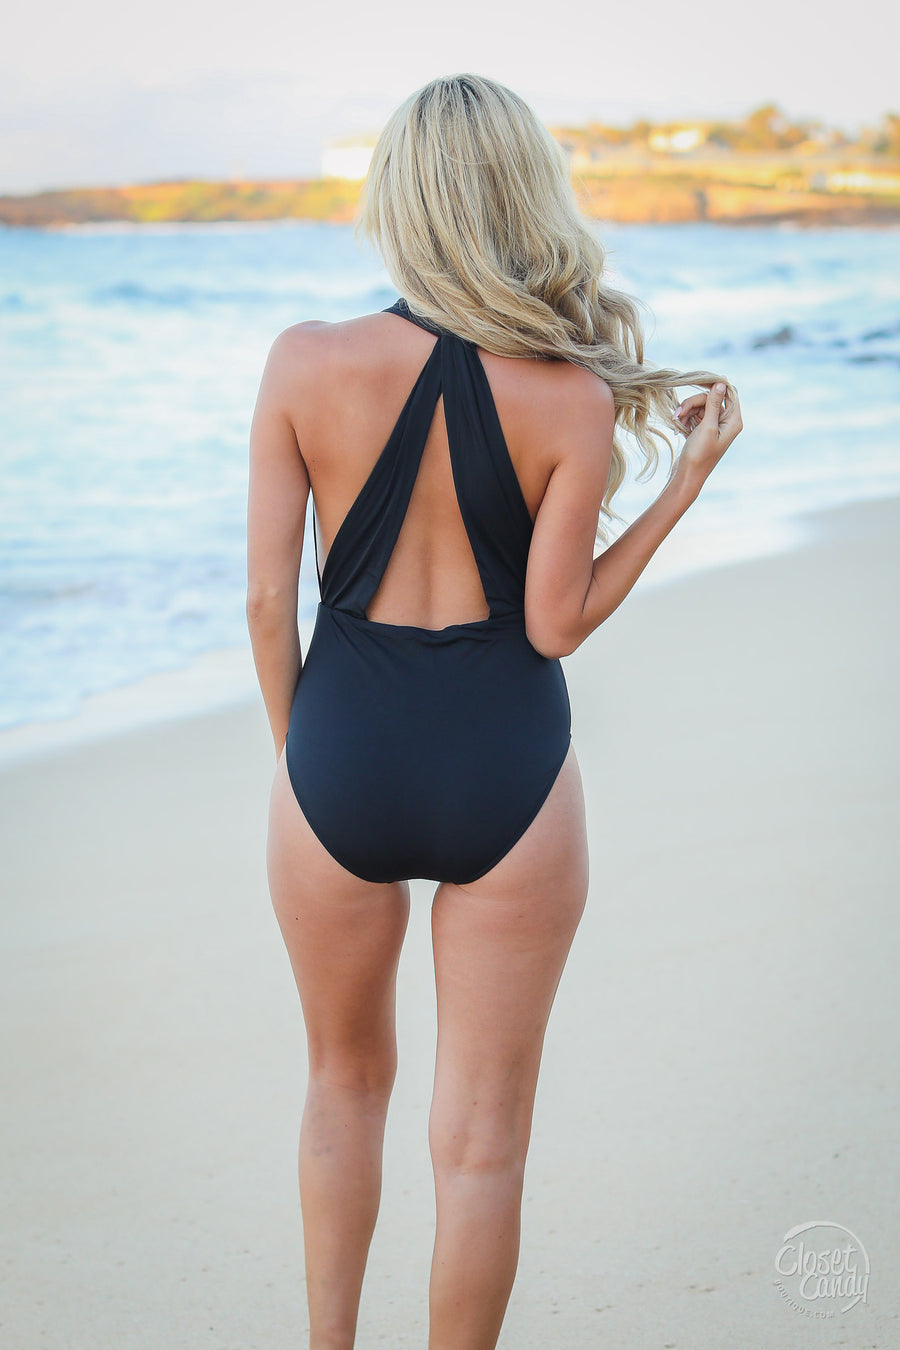 Beach Happy Swimsuit - Black - Trendy and cute One piece swim by Closet Candy Boutique - Closeup